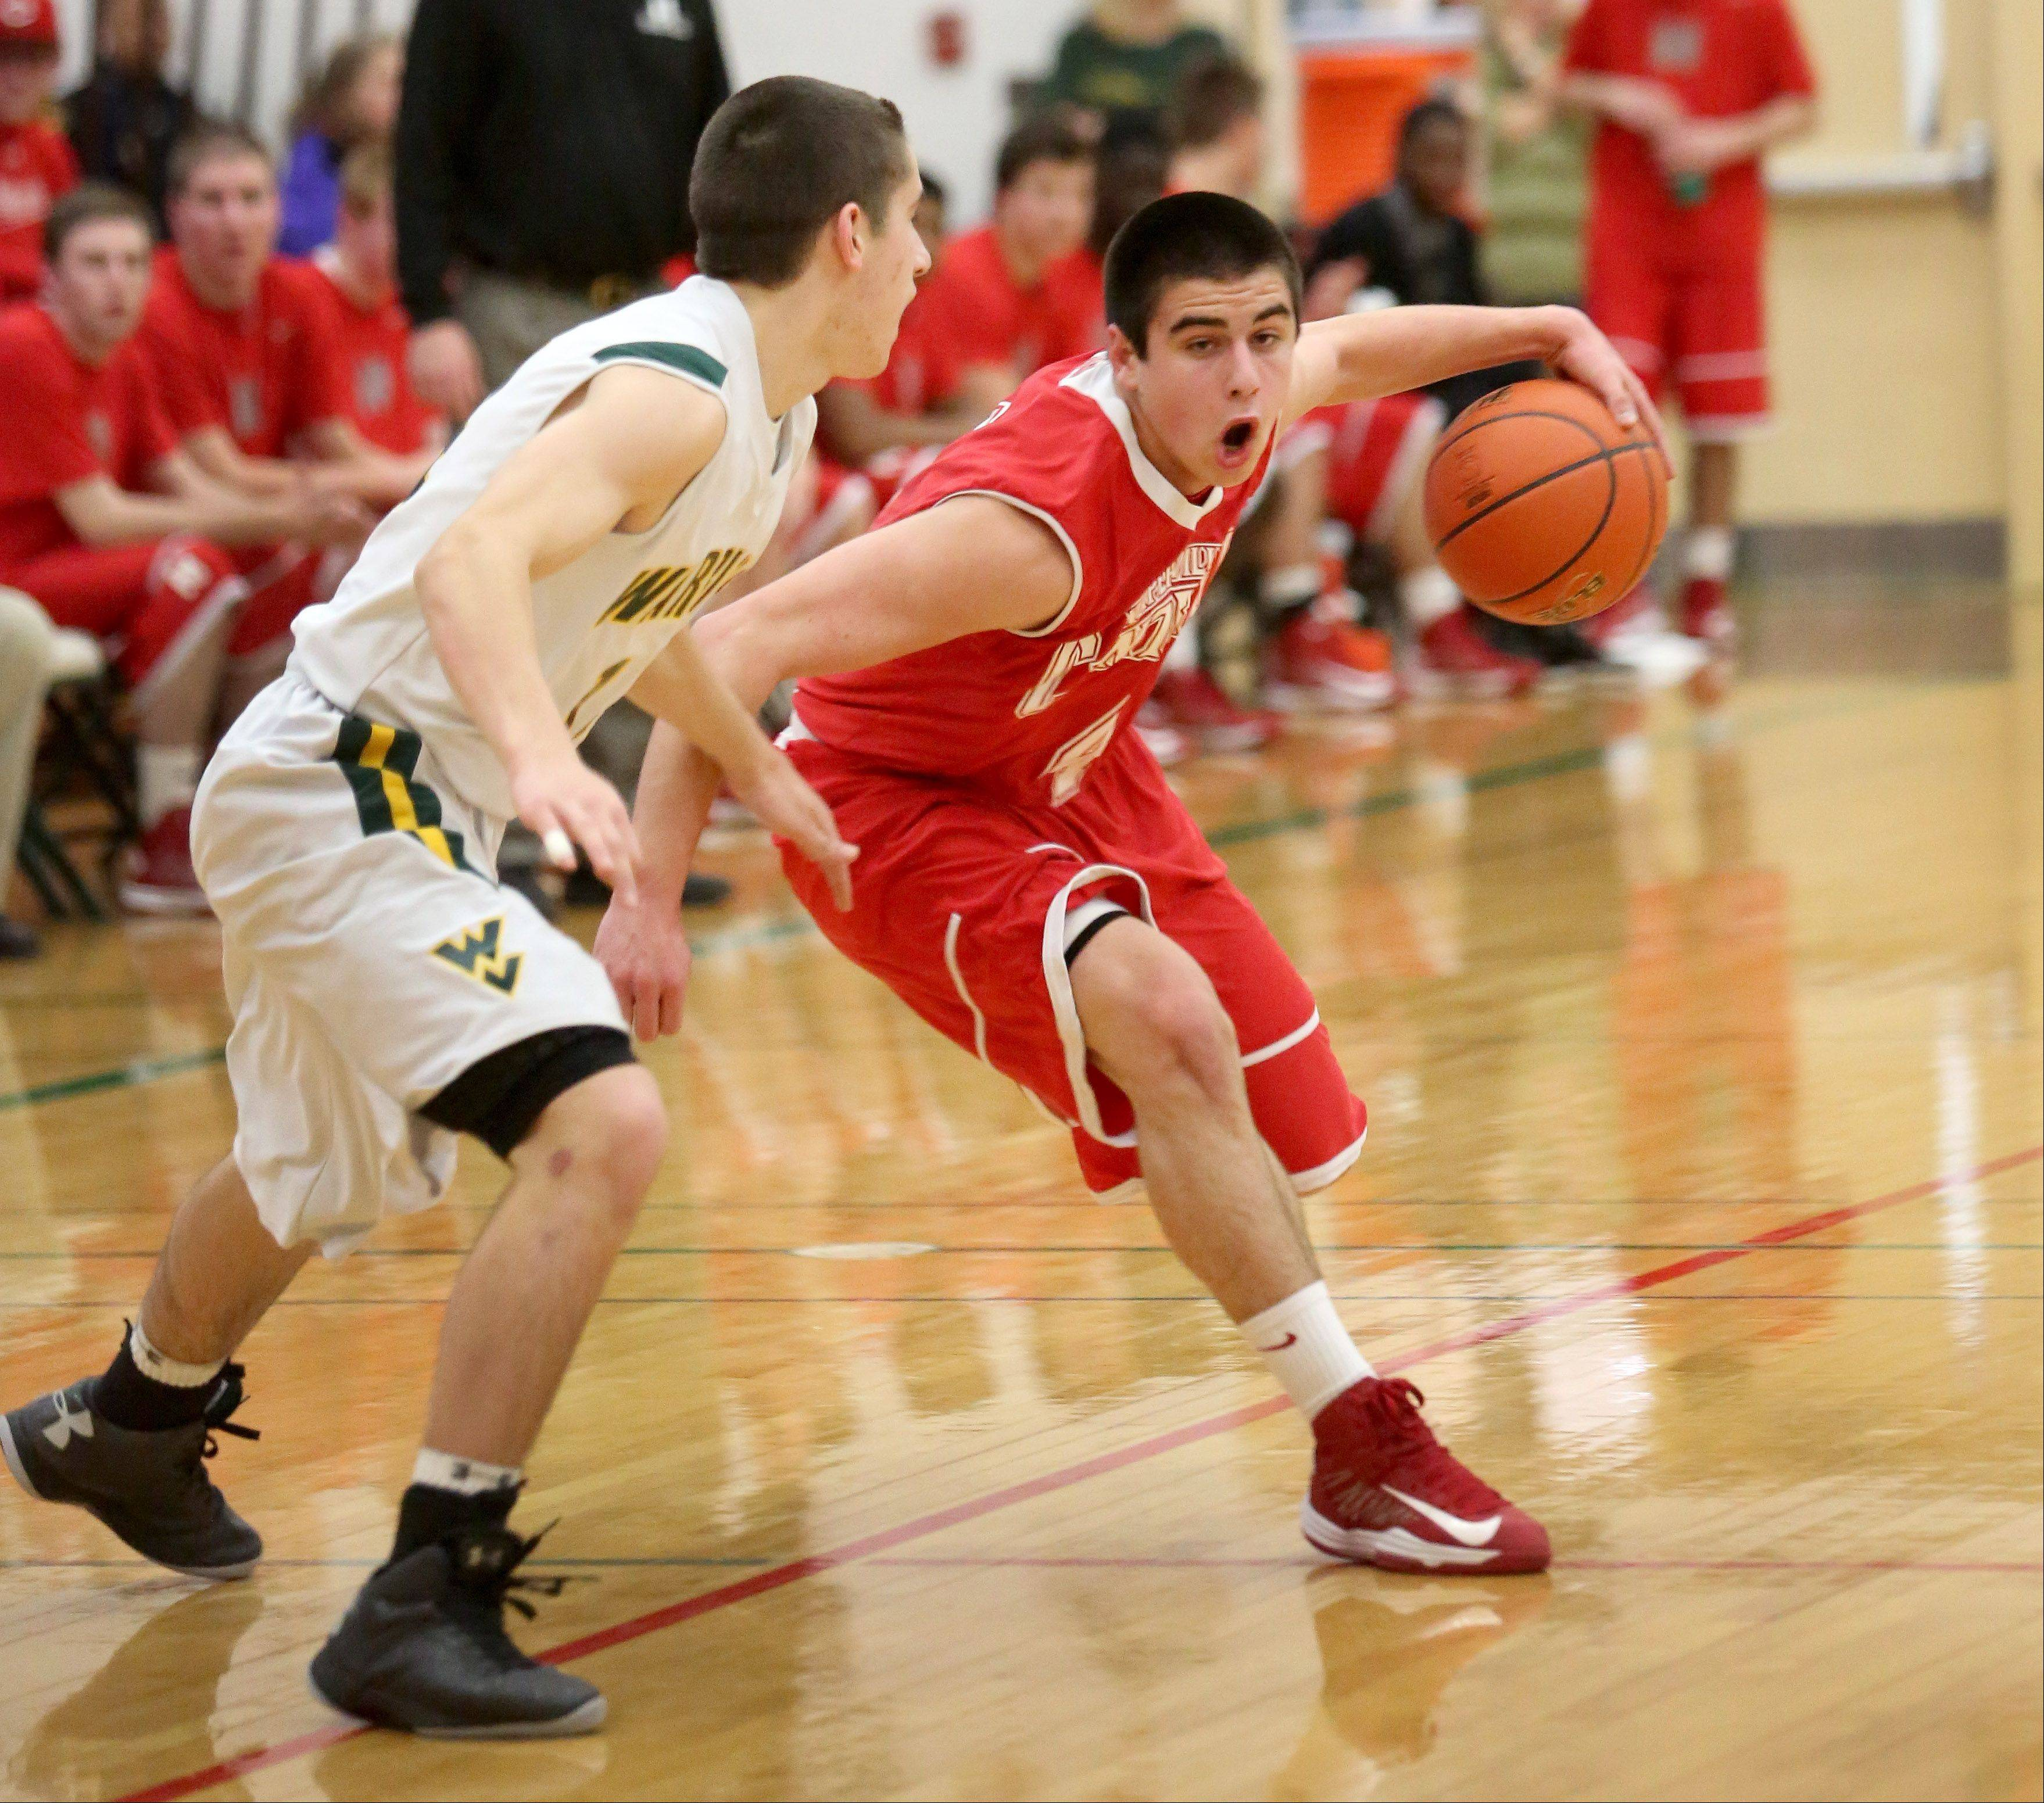 Ryan Antony of Naperville Central, right, moves around Nick Karkazis of Waubonsie Valley.